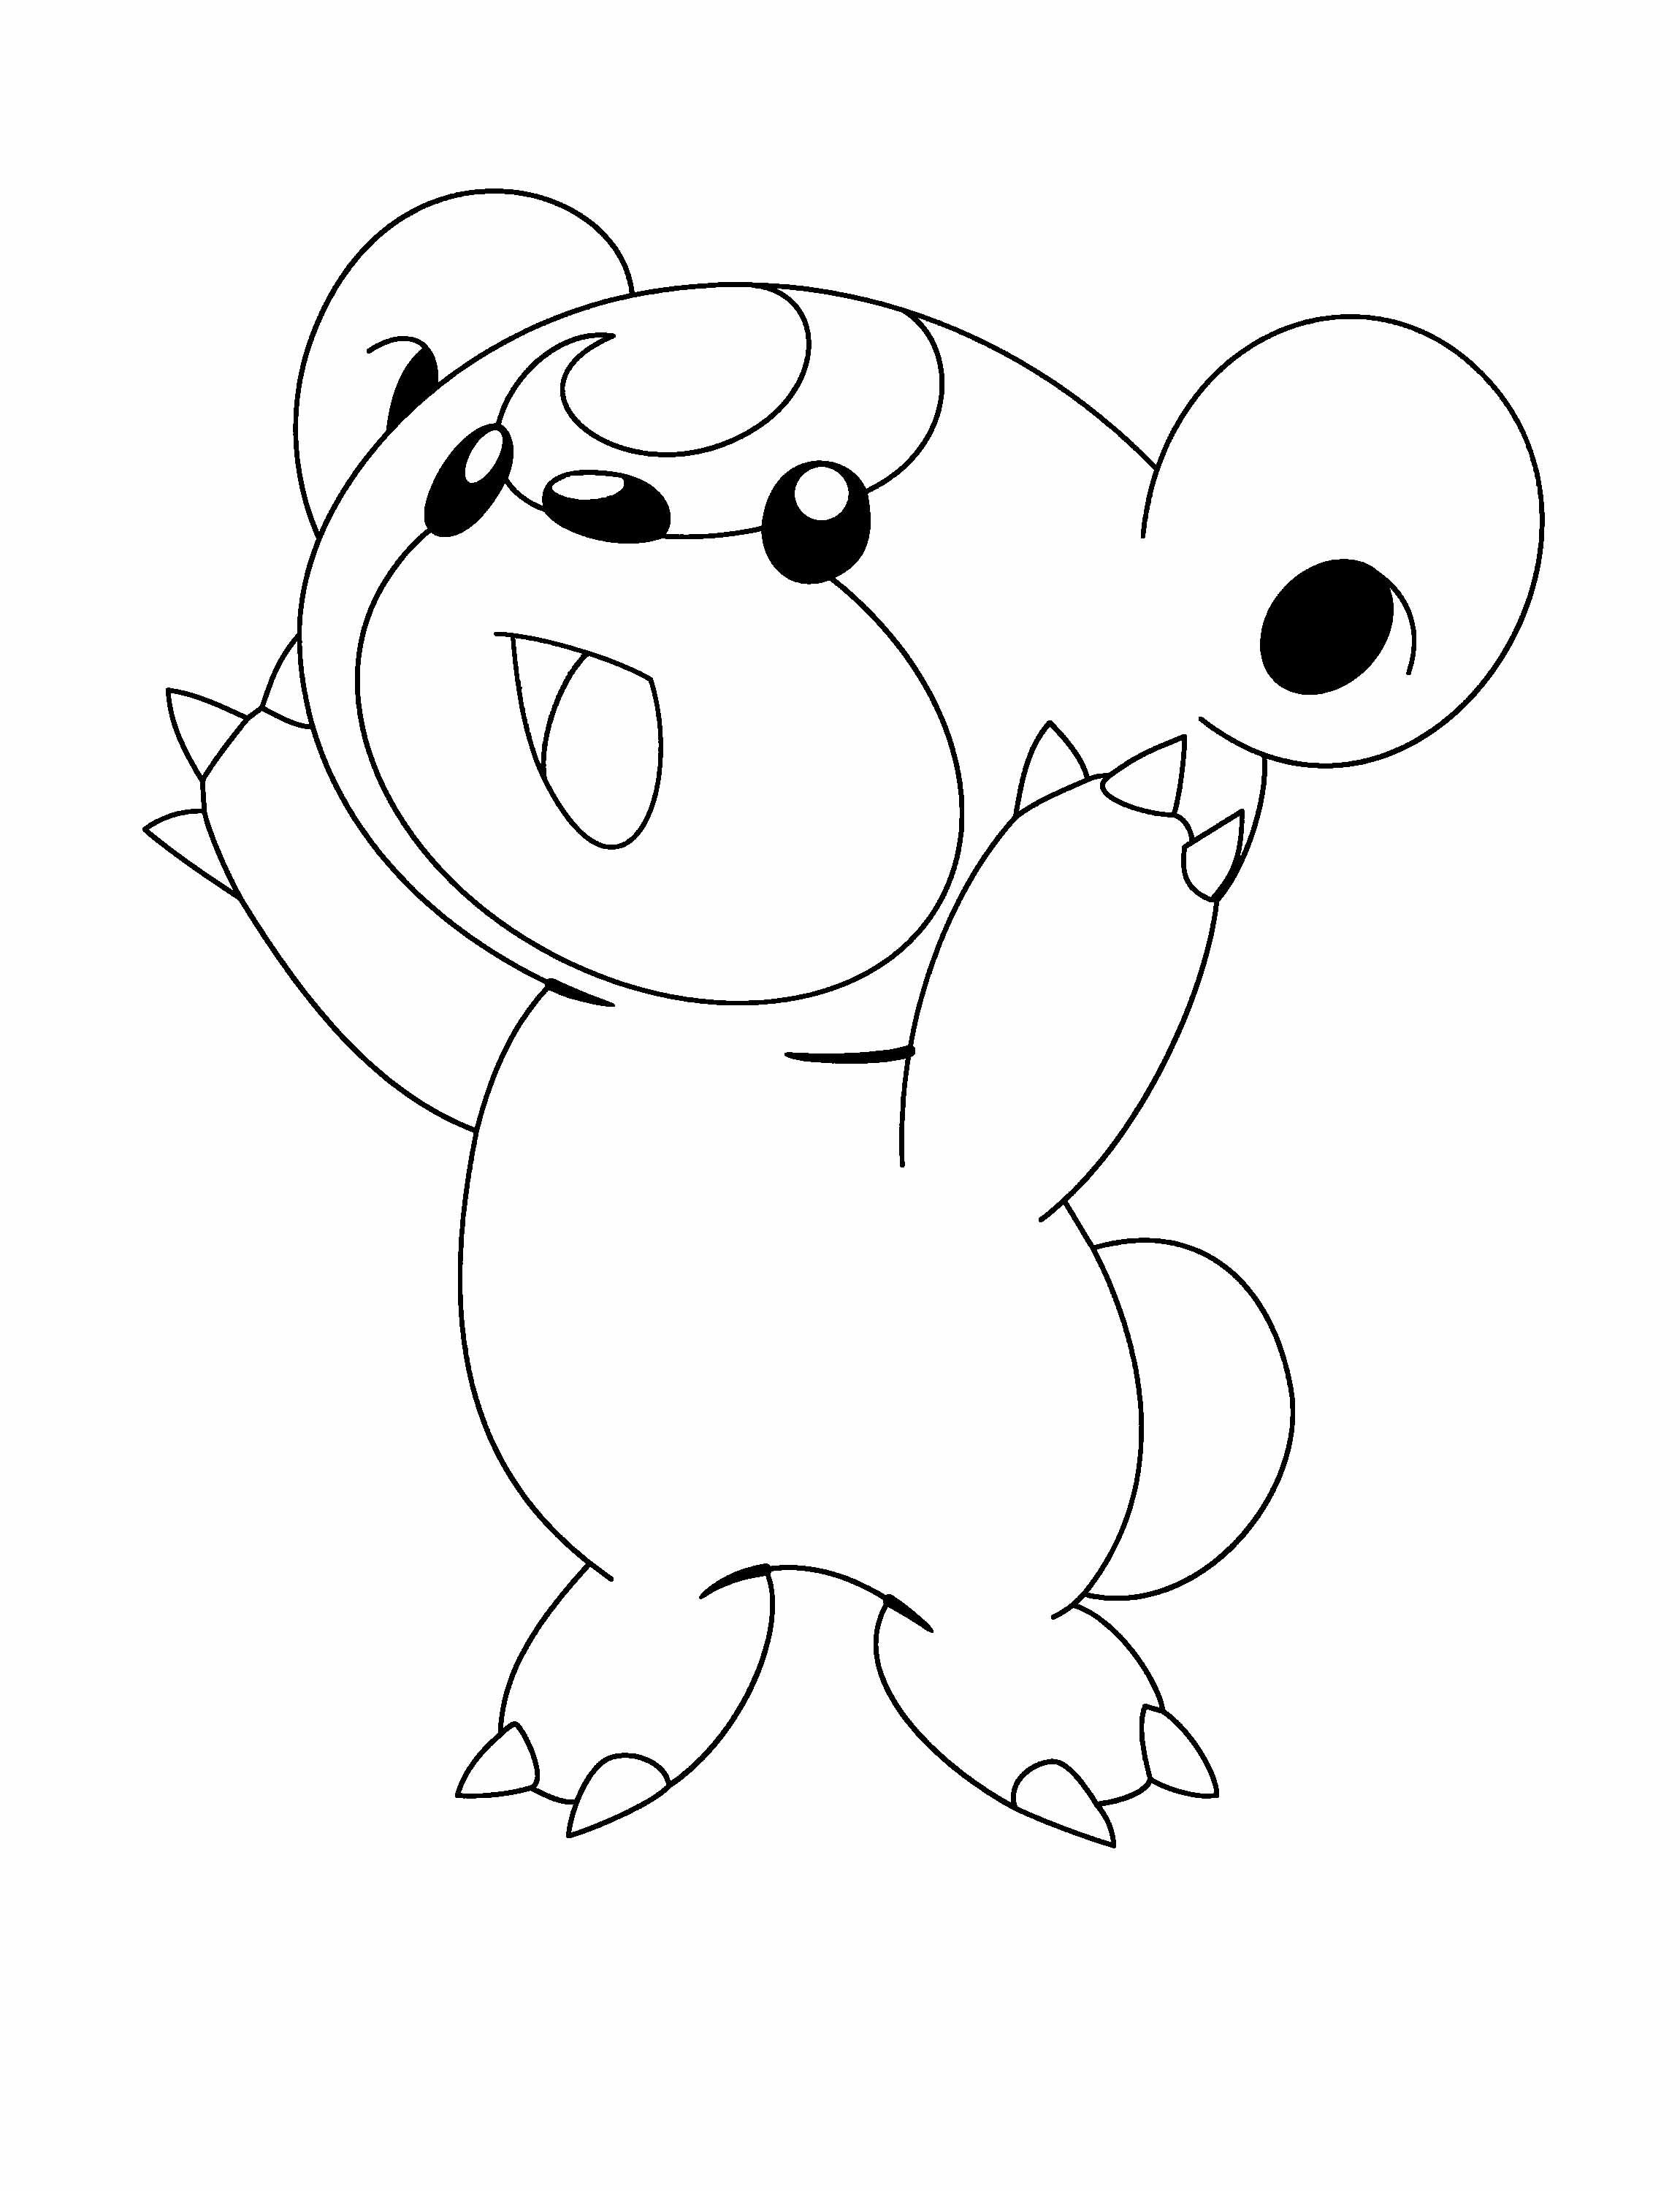 small pokemon yell coloring page